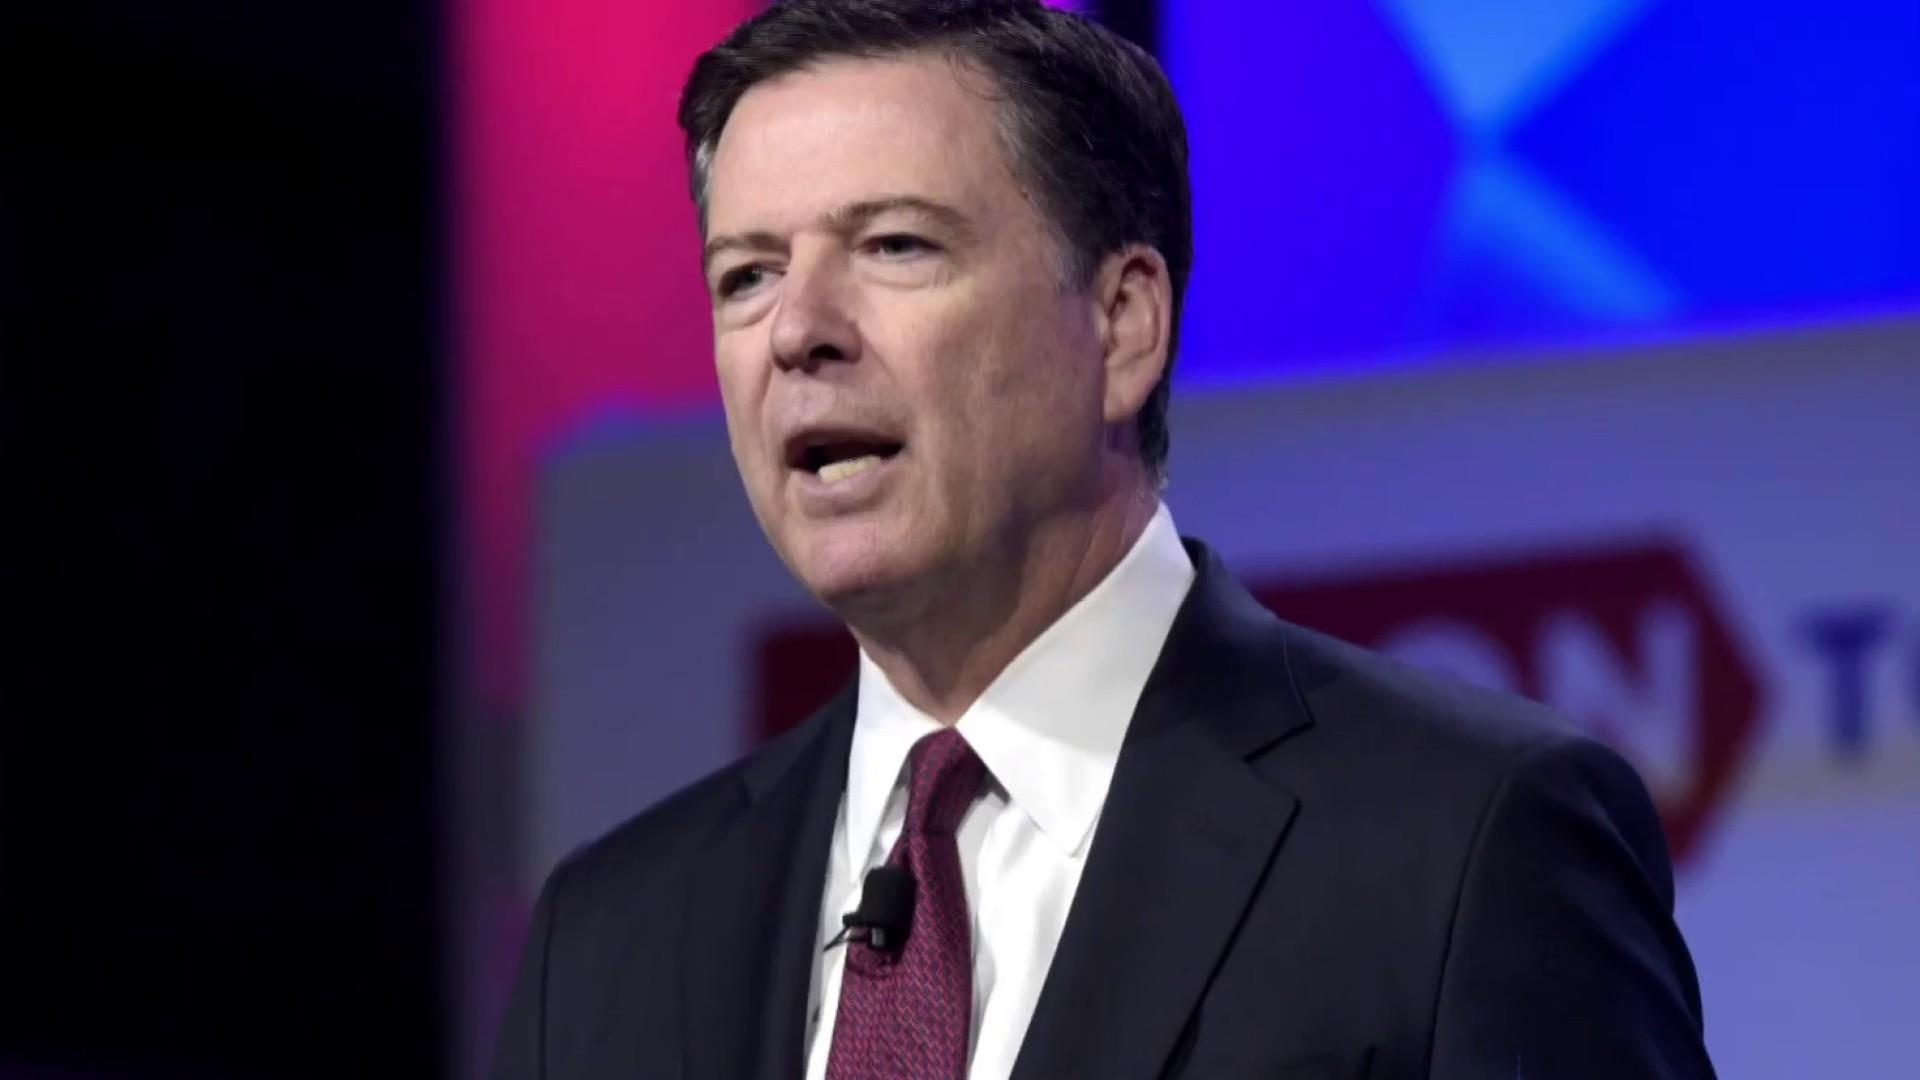 "James Comey Why Did It Take Trump So Long to Drive Out Dan Coats? John Ratcliffe Interview Takes On New Significance After Trump Picks Him As Intelligence Chief | The Daily Caller John Ratcliffe: AG William Barr will deliver justice to any Obama officials who committed crimes Devin Nunes: CIA has 'come clean' but John Brennan remains a concern James Comey: 'Millions of 2016 Trump voters are not racists' and should spurn him in 2020 Don Brown: Policy banning military from carrying guns on US bases should end 072619 Podcast, Mueller, Weissmann, Durham, Bulger, Comey, Firtash, Ferrante, GDP Alan Dershowitz: Mueller wrongly introduces dangerous concept of 'exoneration' in review of Trump actions Trump Strikes Back, Calls for Investigations Into Obama, Clinton, and More Remember: The reviled 'media' began reporting Mueller stories before Mueller Trump: A Brawler for Democracy 'He's a Front': Fox's Jeanine Pirro Says Mueller Hearing Proves Existence of 'Deep State' Adviser, son-in-law and hidden campaign hand: How Kushner is trying to help Trump win in 2020 WATCH: Mueller's full testimony before the House Judiciary Committee Why I Am Not Celebrating the Mueller Hearings CNN's Brian Stelter Covers Mueller Ratings, Fails to Note CNN Came Dead Last PolitiFact's Mueller Report Book Club, Volume 2 Mueller Hearing Generated Less Than 13 Million Viewers What Mueller Was Trying to Hide The Myth Of Robert Mueller, Exploded The sins of James Comey still haunt Robert Mueller Late-Night Hosts React to Robert Mueller Testimony Fox & Friends and Mark Levin urge investigation of ""the role of President Obama"" in Trump/Russia probe Mueller testimony: Republicans claim hearing a 'disaster for Democrats' Opinion: After Mueller, Democrats need to realize no one is coming to save us from Trump Mueller hearing reaches just under 13 million viewers Trey Gowdy warns GOP to stop hyping Justice Department inquiries into Russia investigation origins Mueller testimony drew fewer viewers than Comey, Kavanaugh, and Cohen hearings Robert Mueller Testimony Ratings: Fox News Is No. 1 in Total Viewers; NBC No. 1 in A25-54 Demo Robert Mueller draws blank on Fusion GPSStories curated for you"